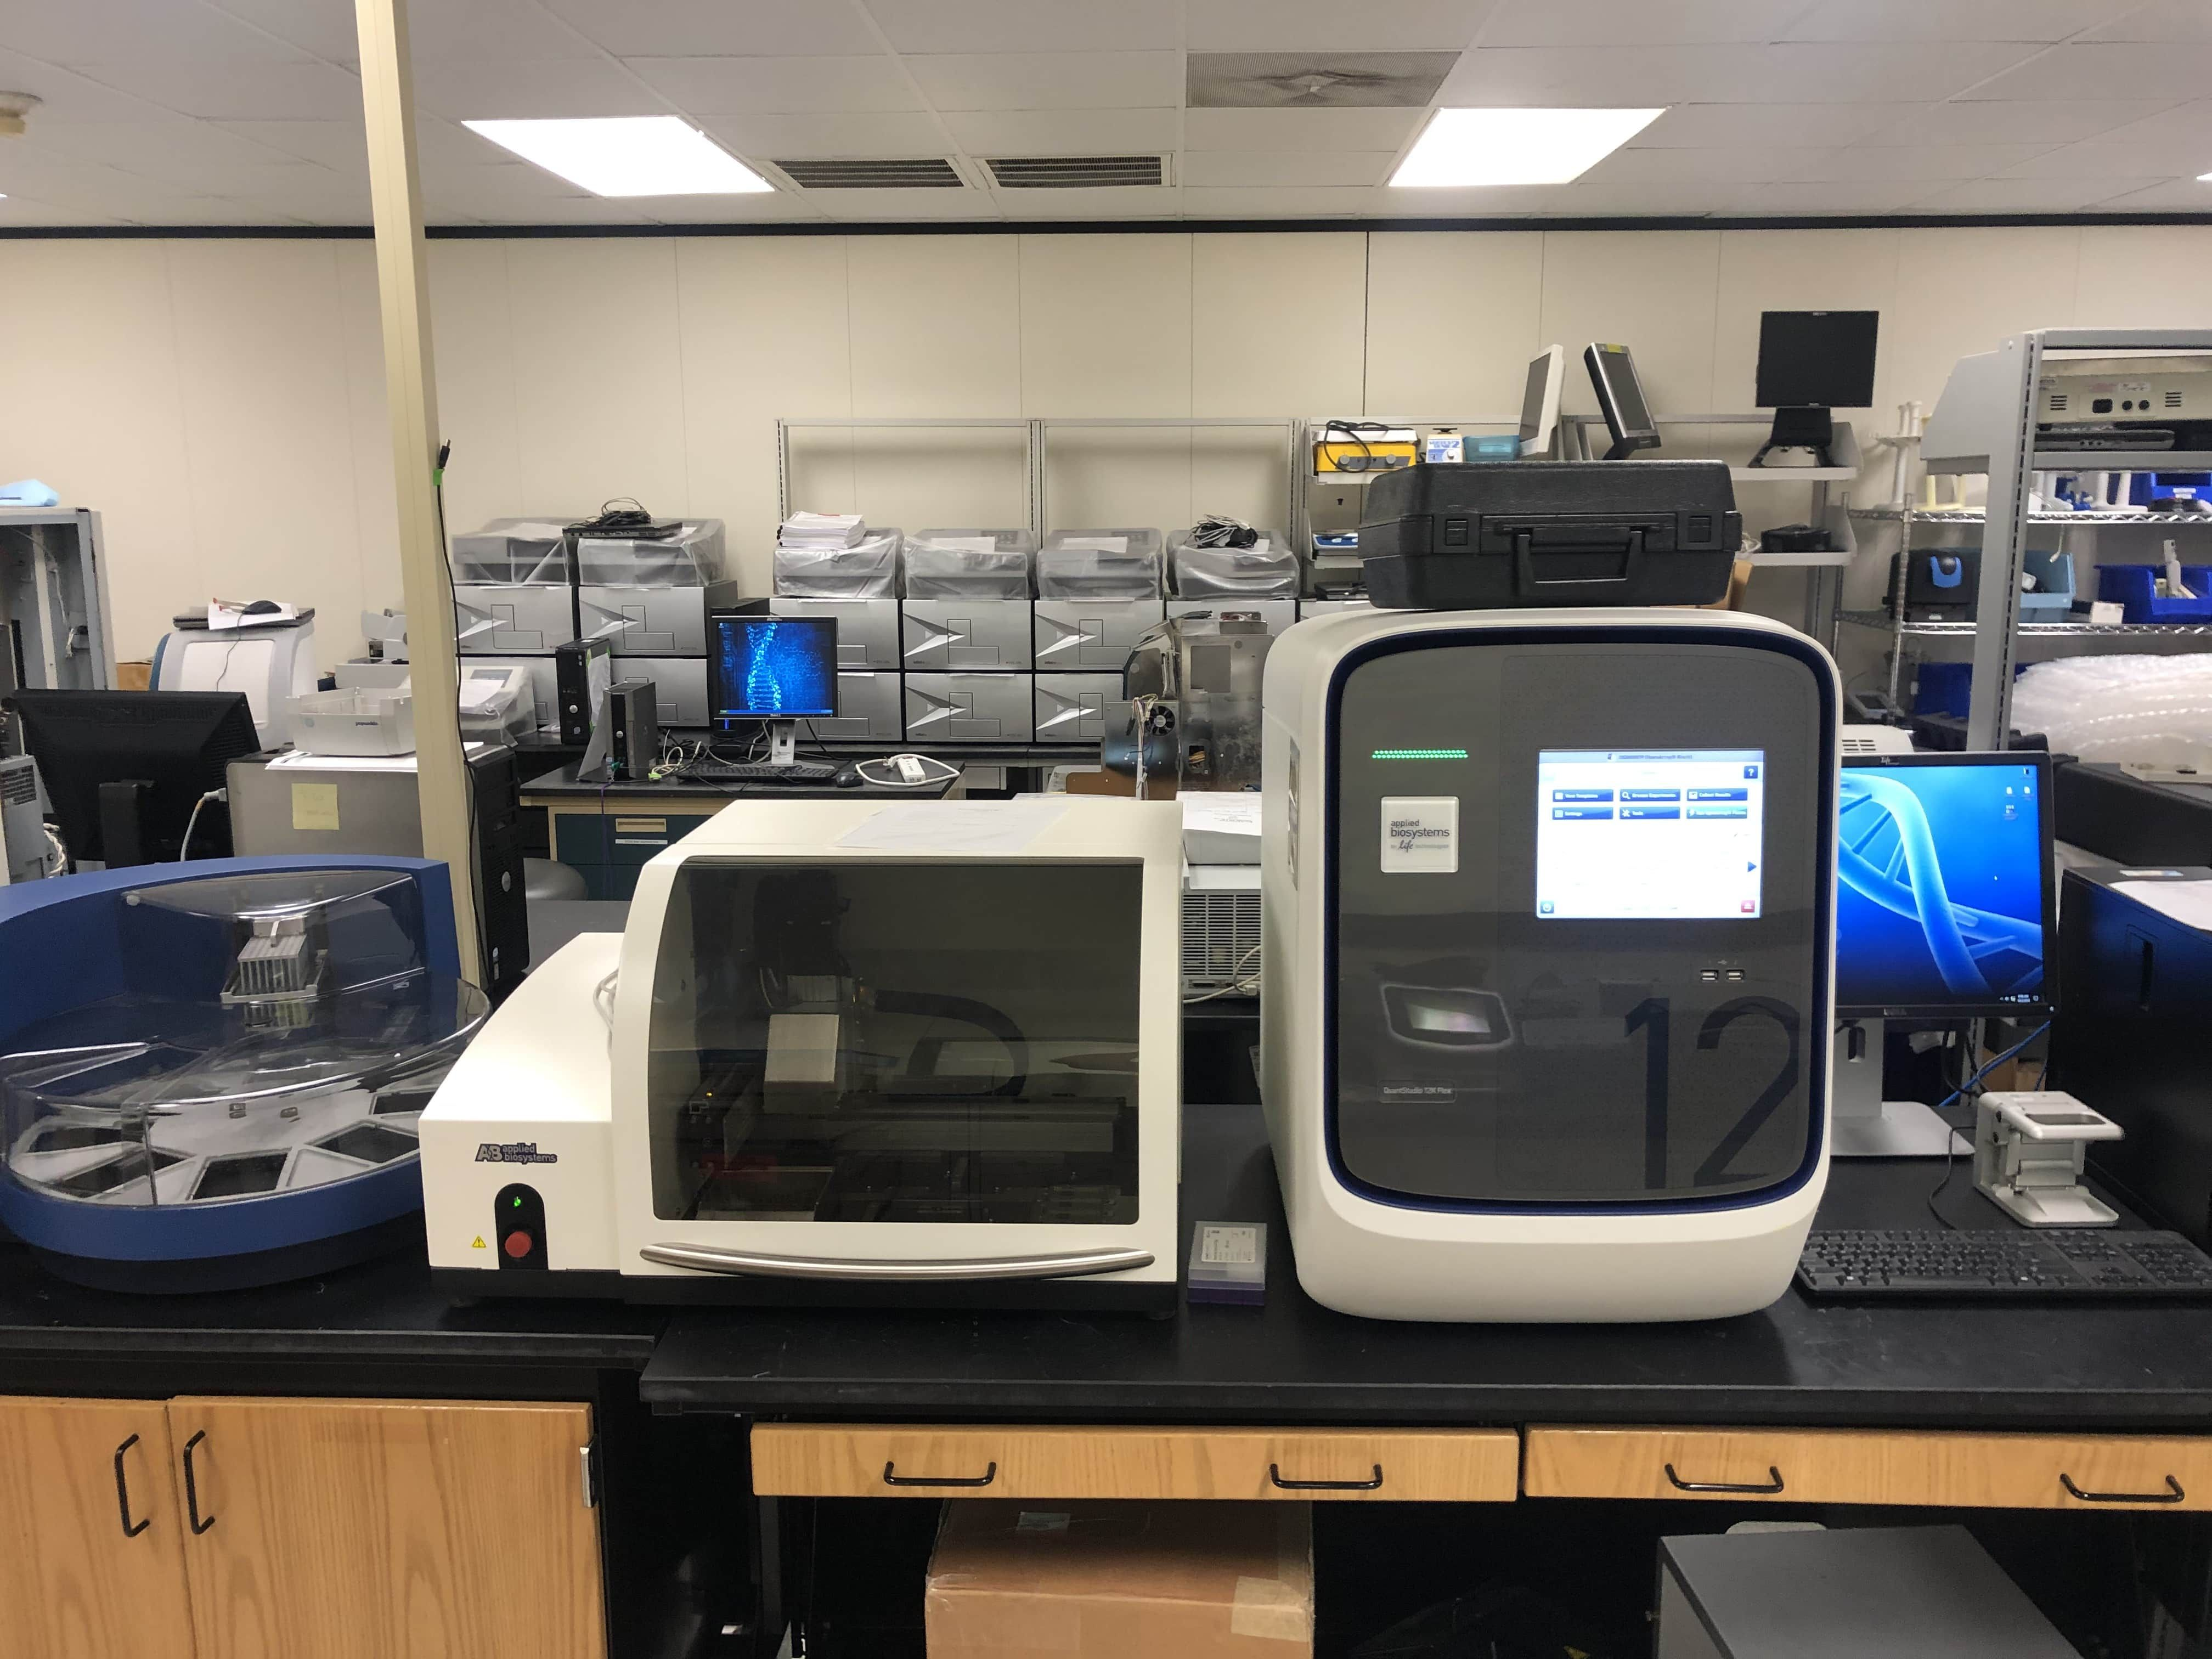 QuantStudio 12-Flex Real-Time PCR Complete System-Year 2015